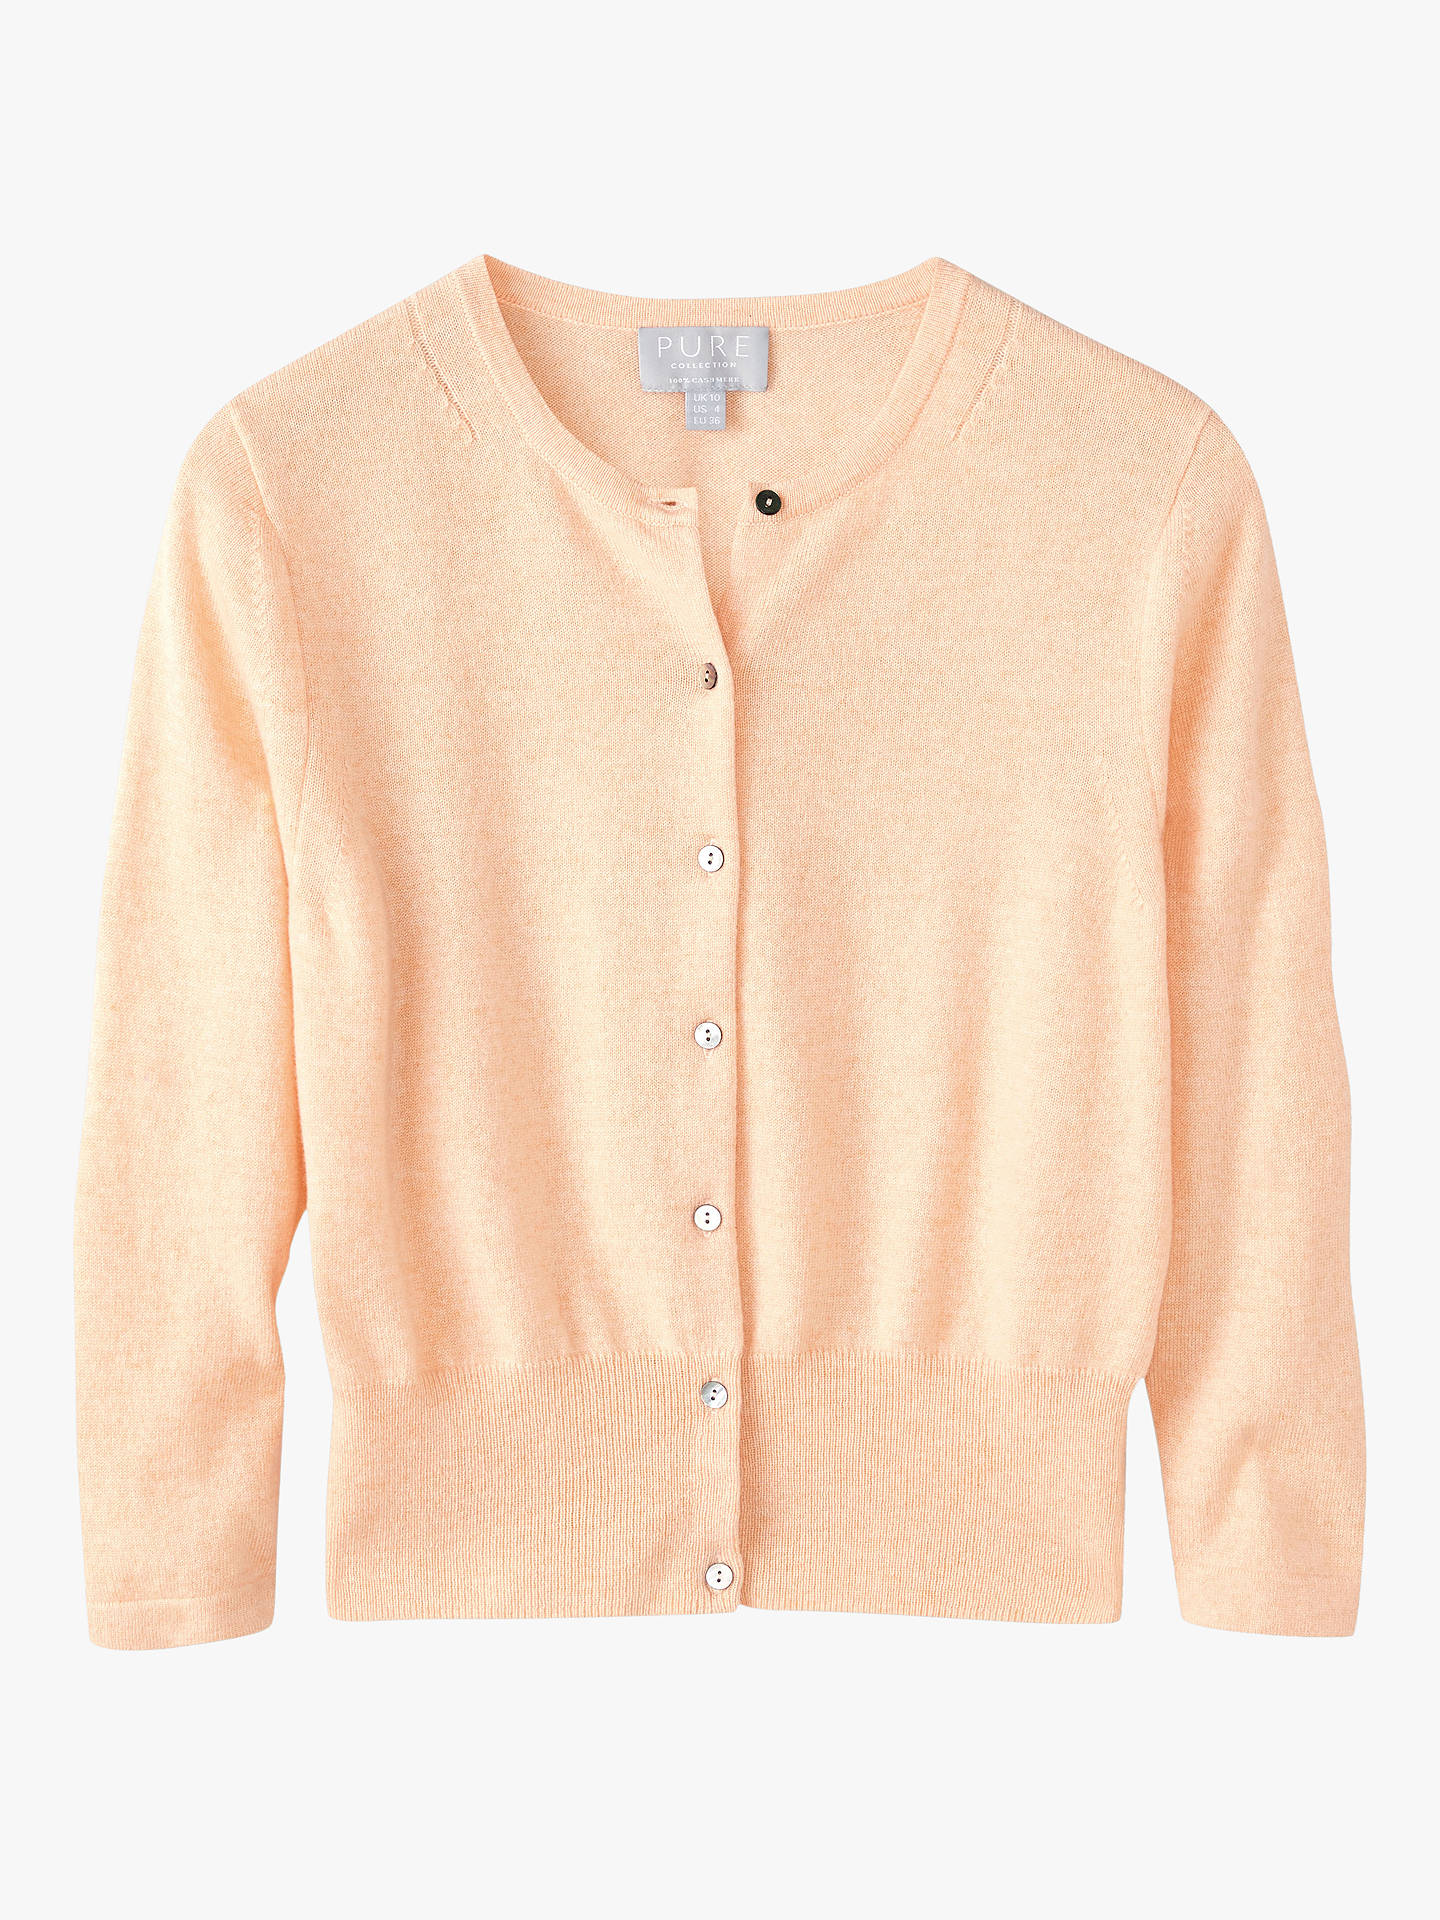 Buy Pure Collection Cashmere Cropped Cashmere Cardigan, Heather Peach, 8 Online at johnlewis.com